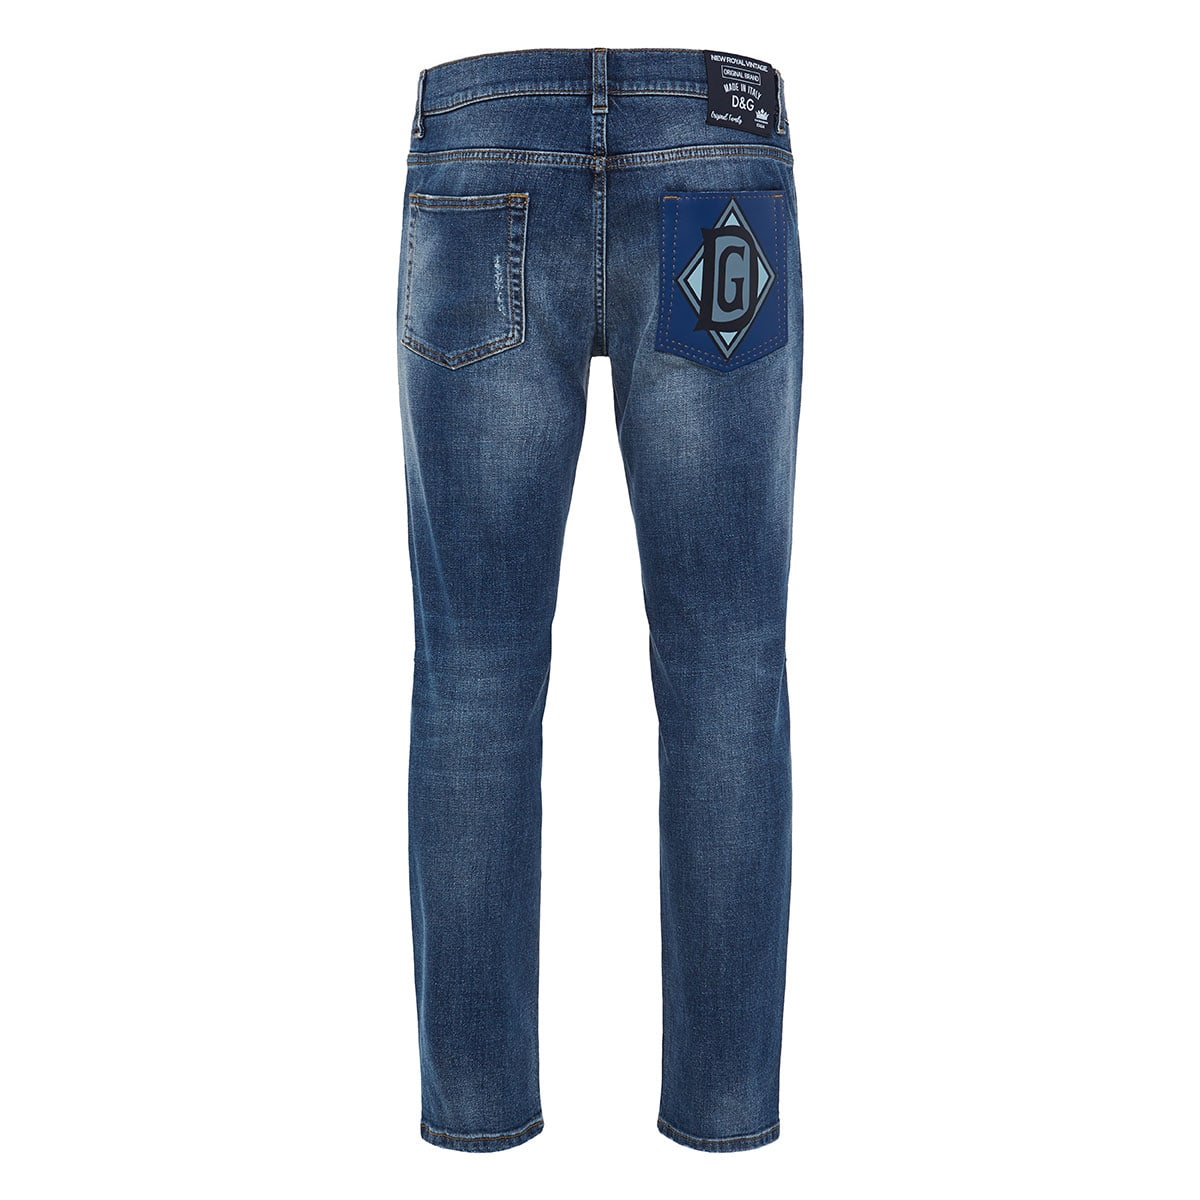 Distressed skinny jeans with logo patch